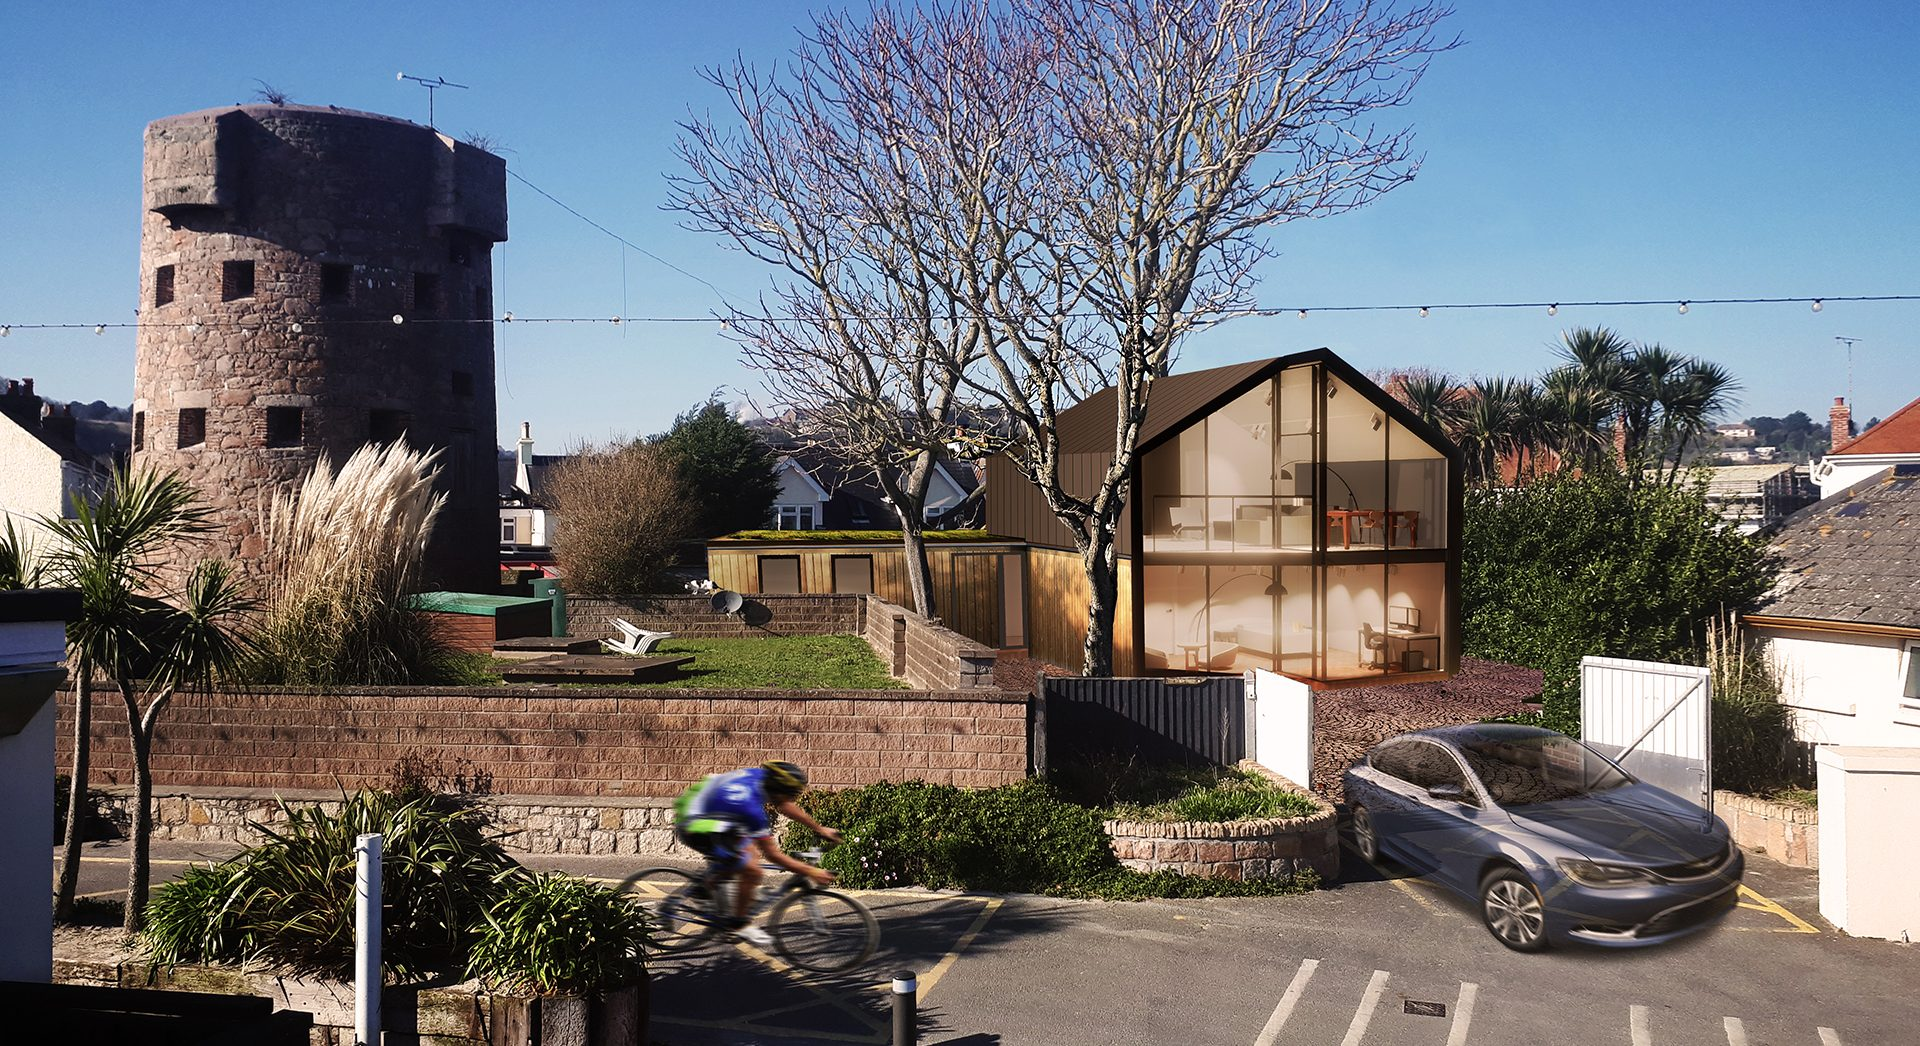 Beach House-st peter-jersey architects